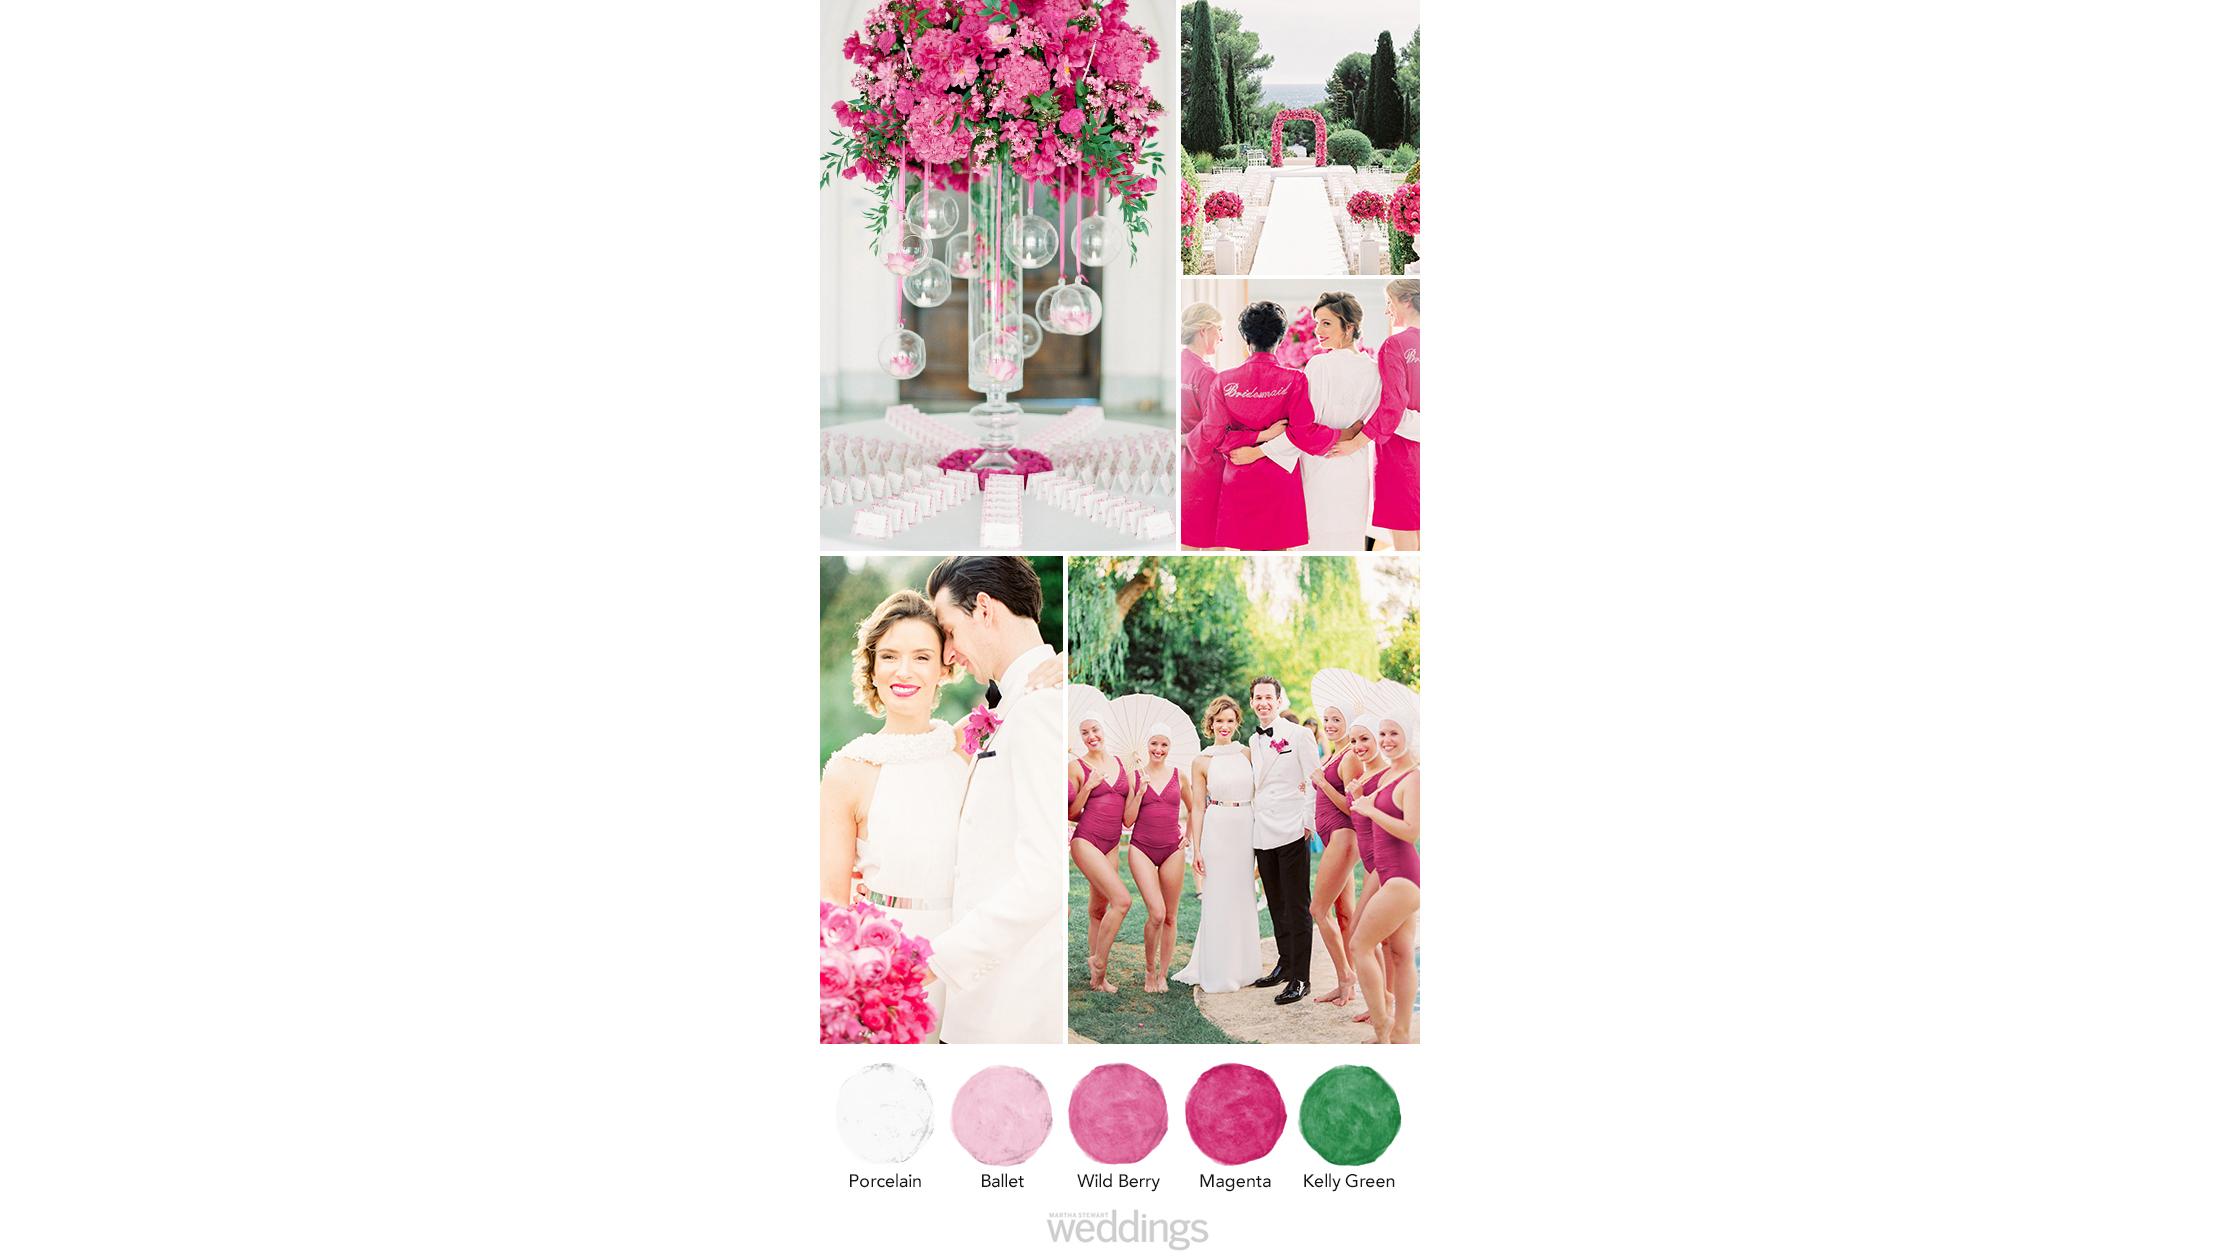 vibrant pink wedding color palette ideas